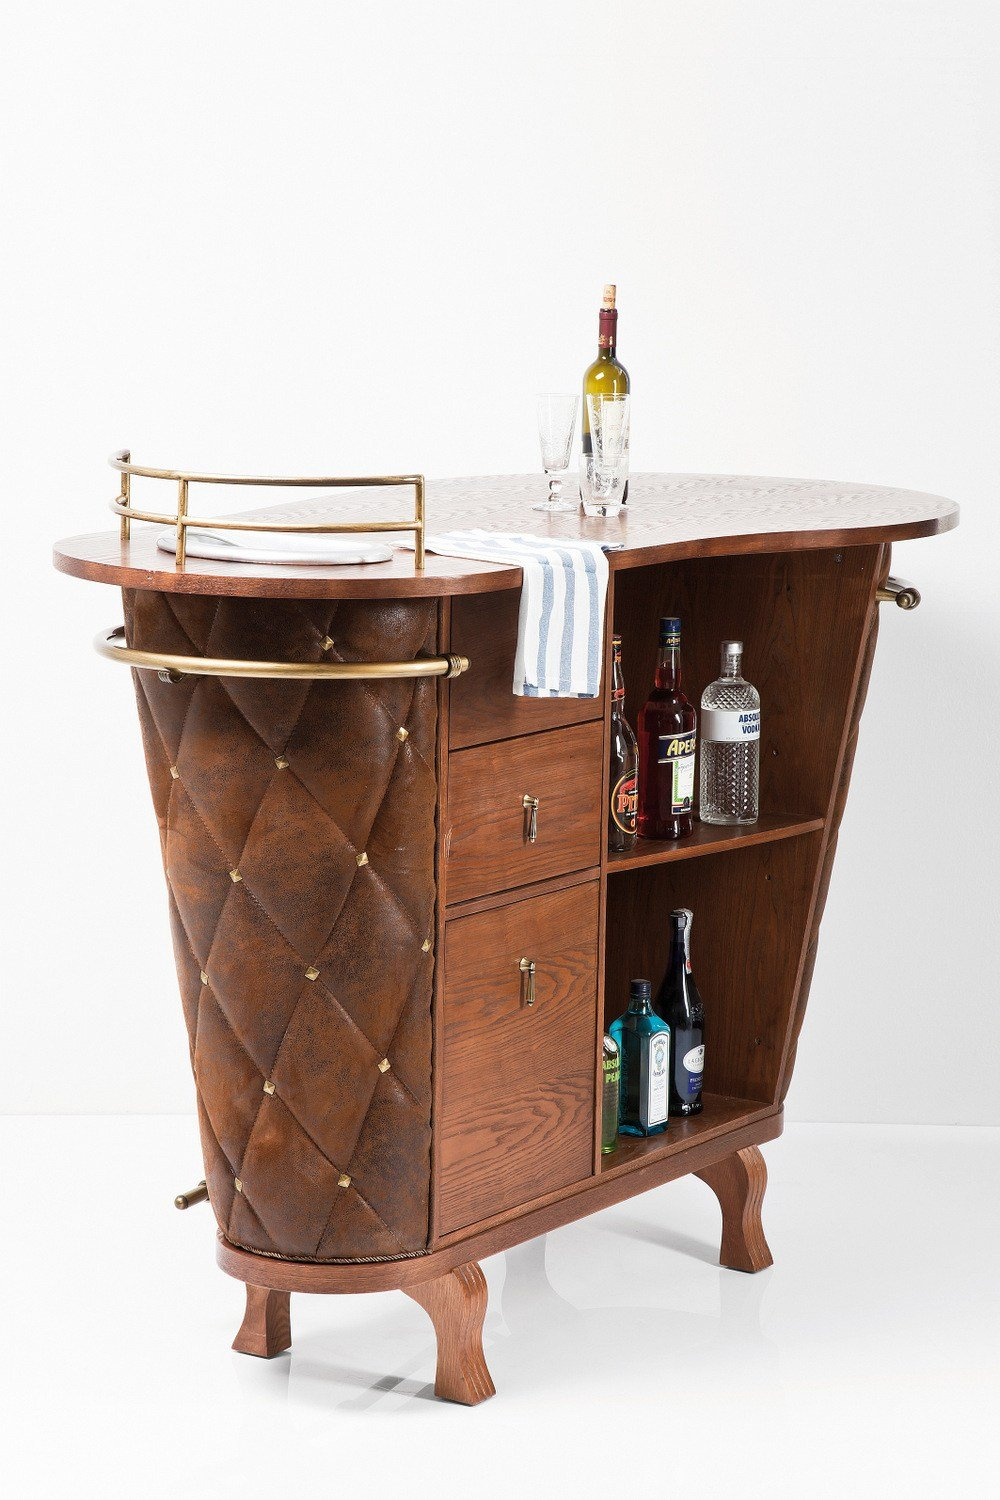 Rockstar vintage meuble bar by kare design for Meuble bar design contemporain